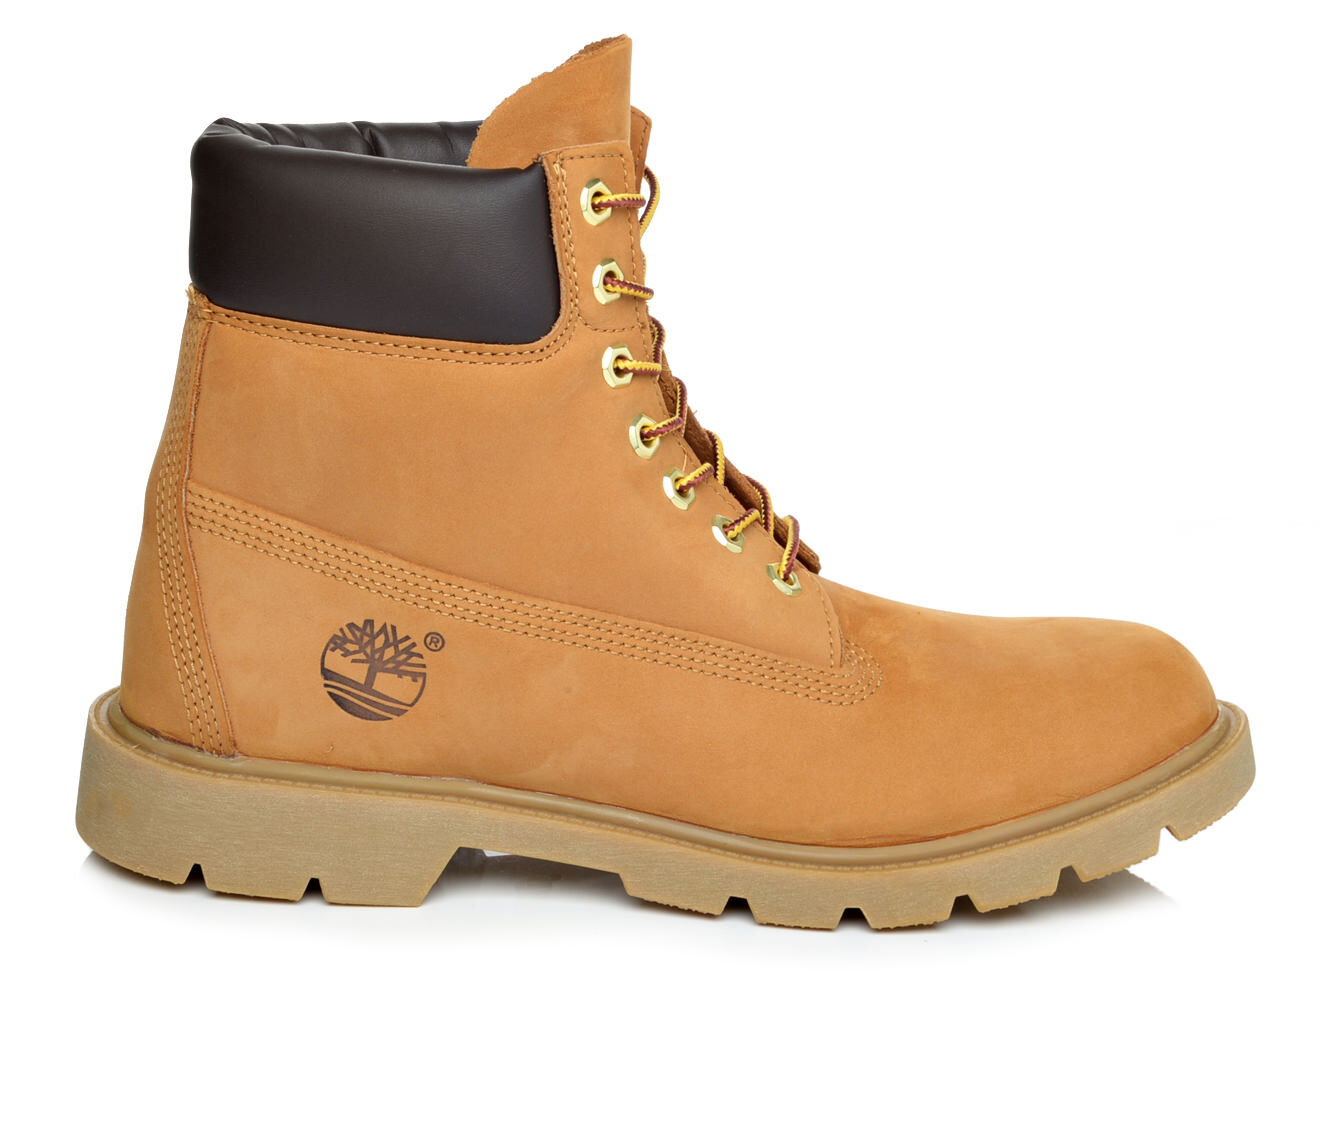 Ladies Timberland Boots, Shoes and Sandals Jake Shoes